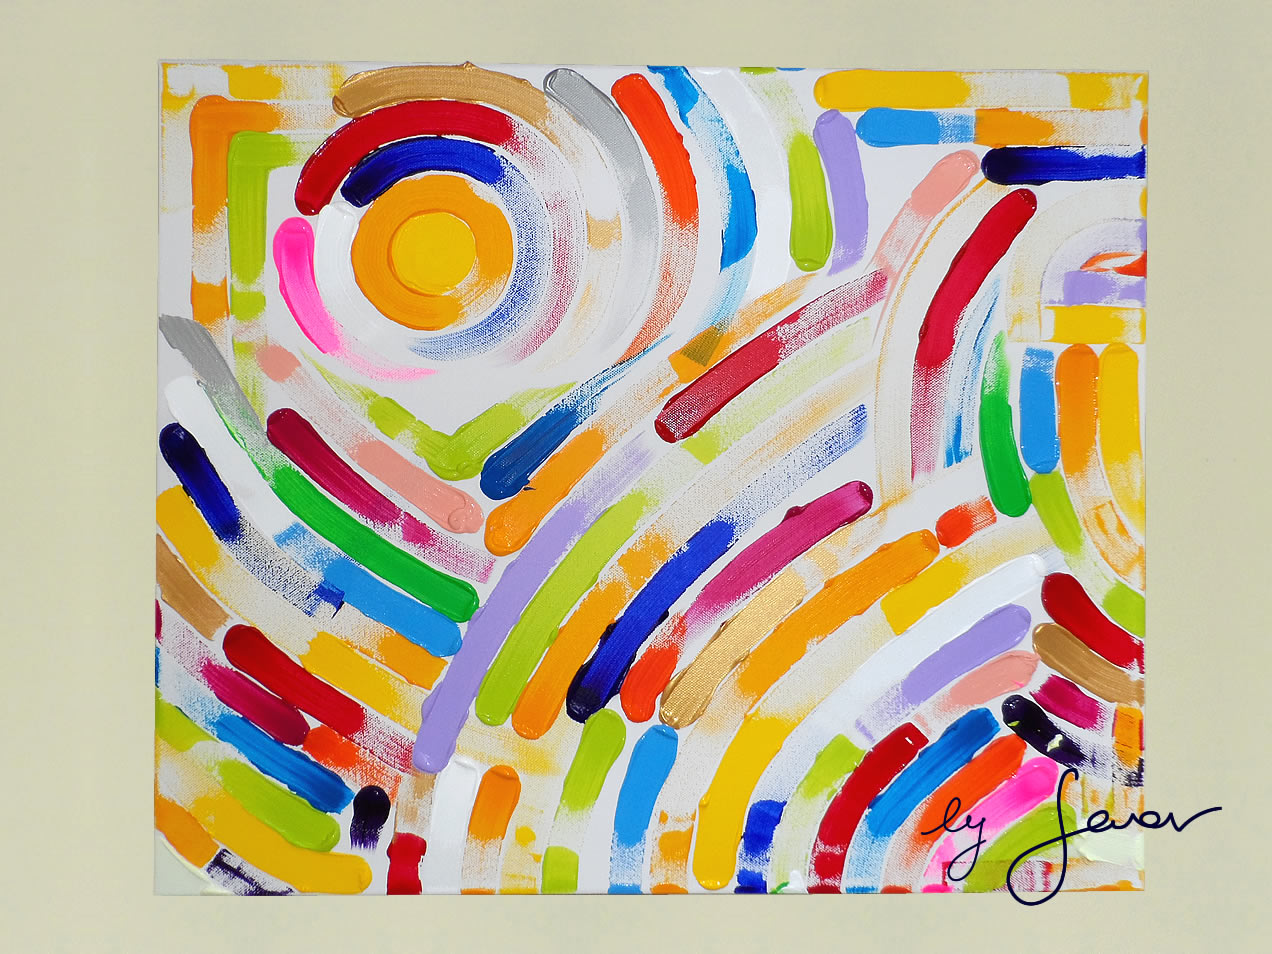 Constant Movement, Painting No. 41 by Swav